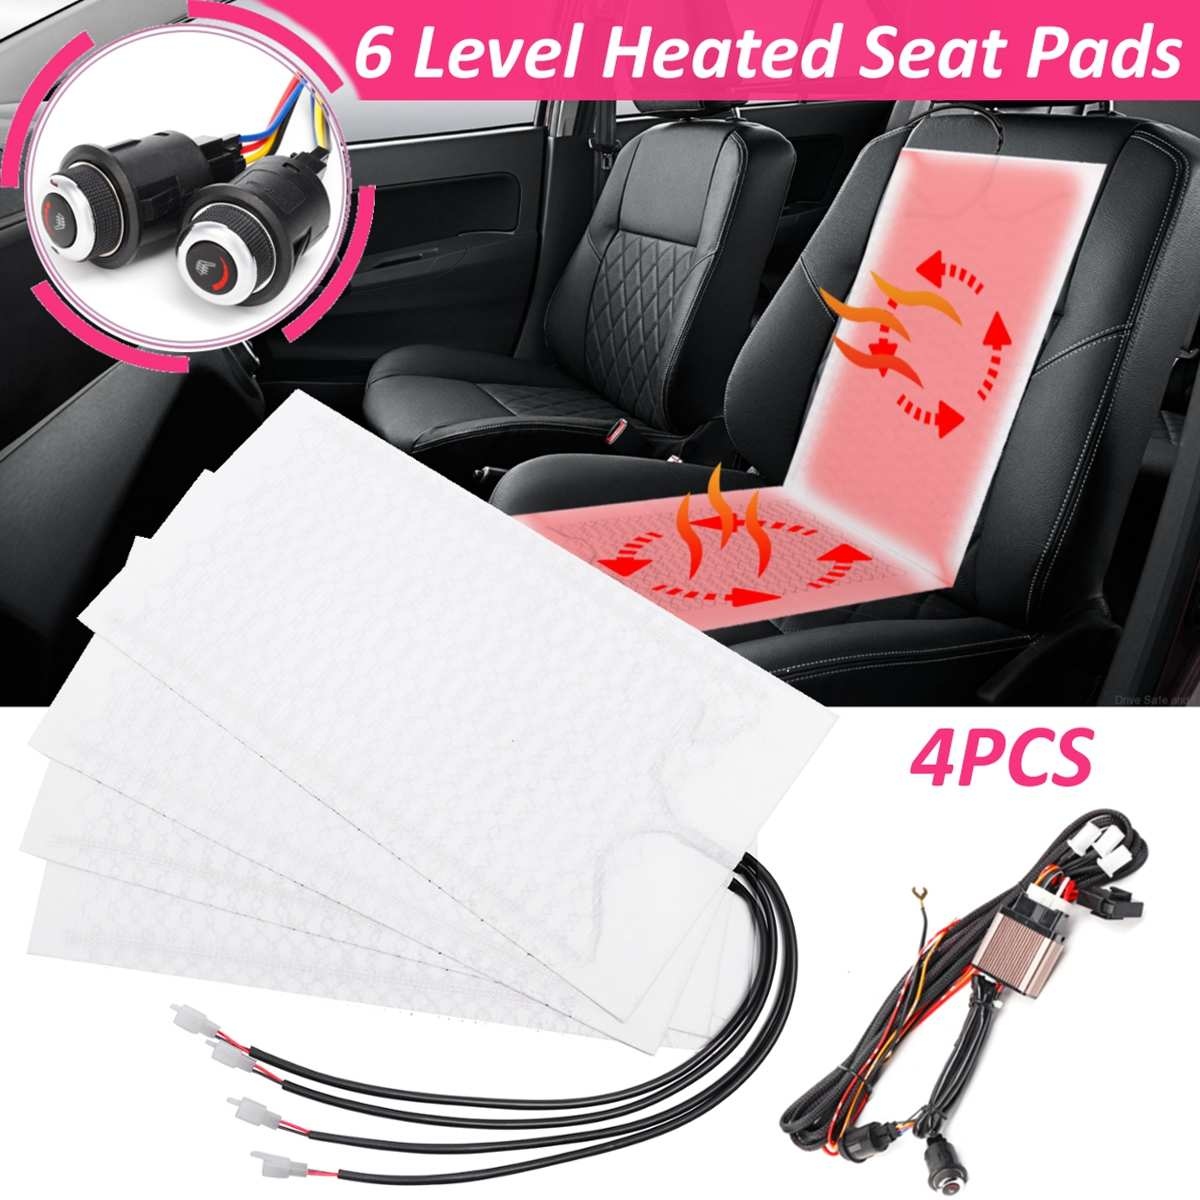 4pcs 6 Level 12v Carbon Fiber Universal Car Heated Heating Heater Seat Pads 2 Seats 4 Pads Winter Warmer Seat Covers Curing Cough And Facilitating Expectoration And Relieving Hoarseness